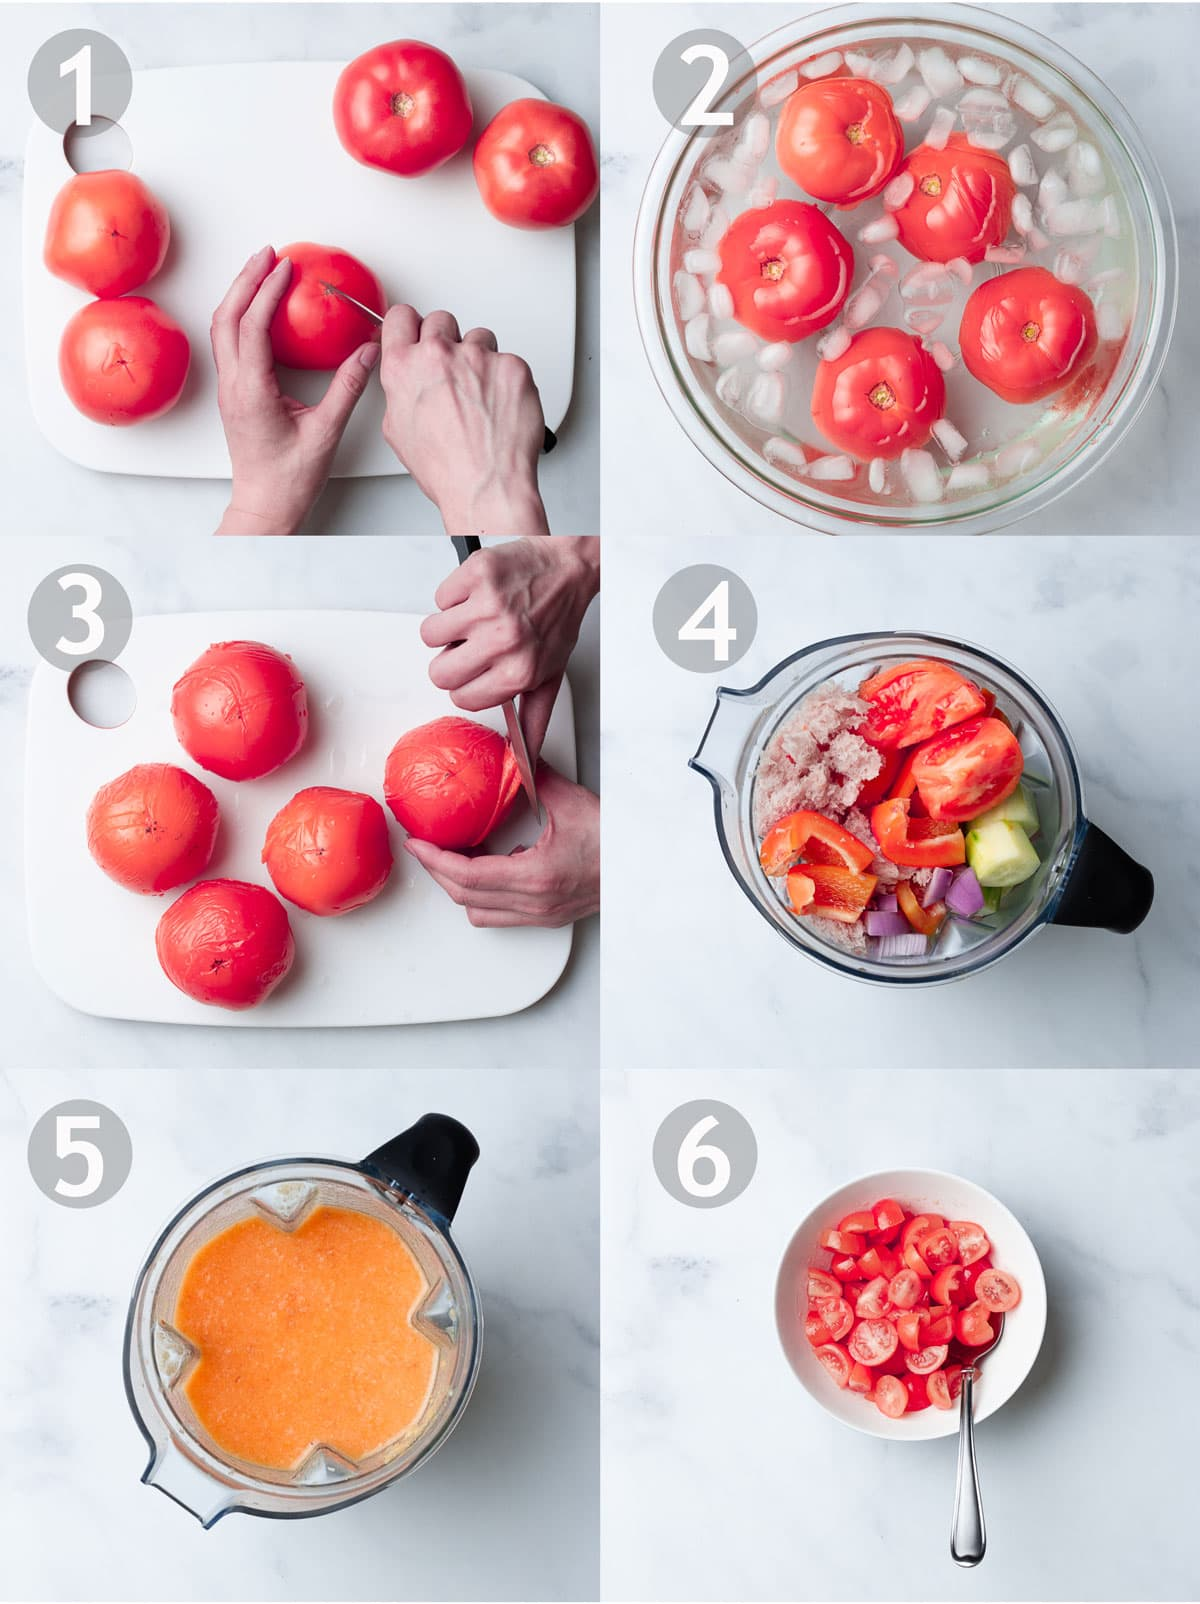 Steps to making a gazpacho including scoring, blanching, shocking and peeling tomatoes, and pureeing all ingredients in a blender.